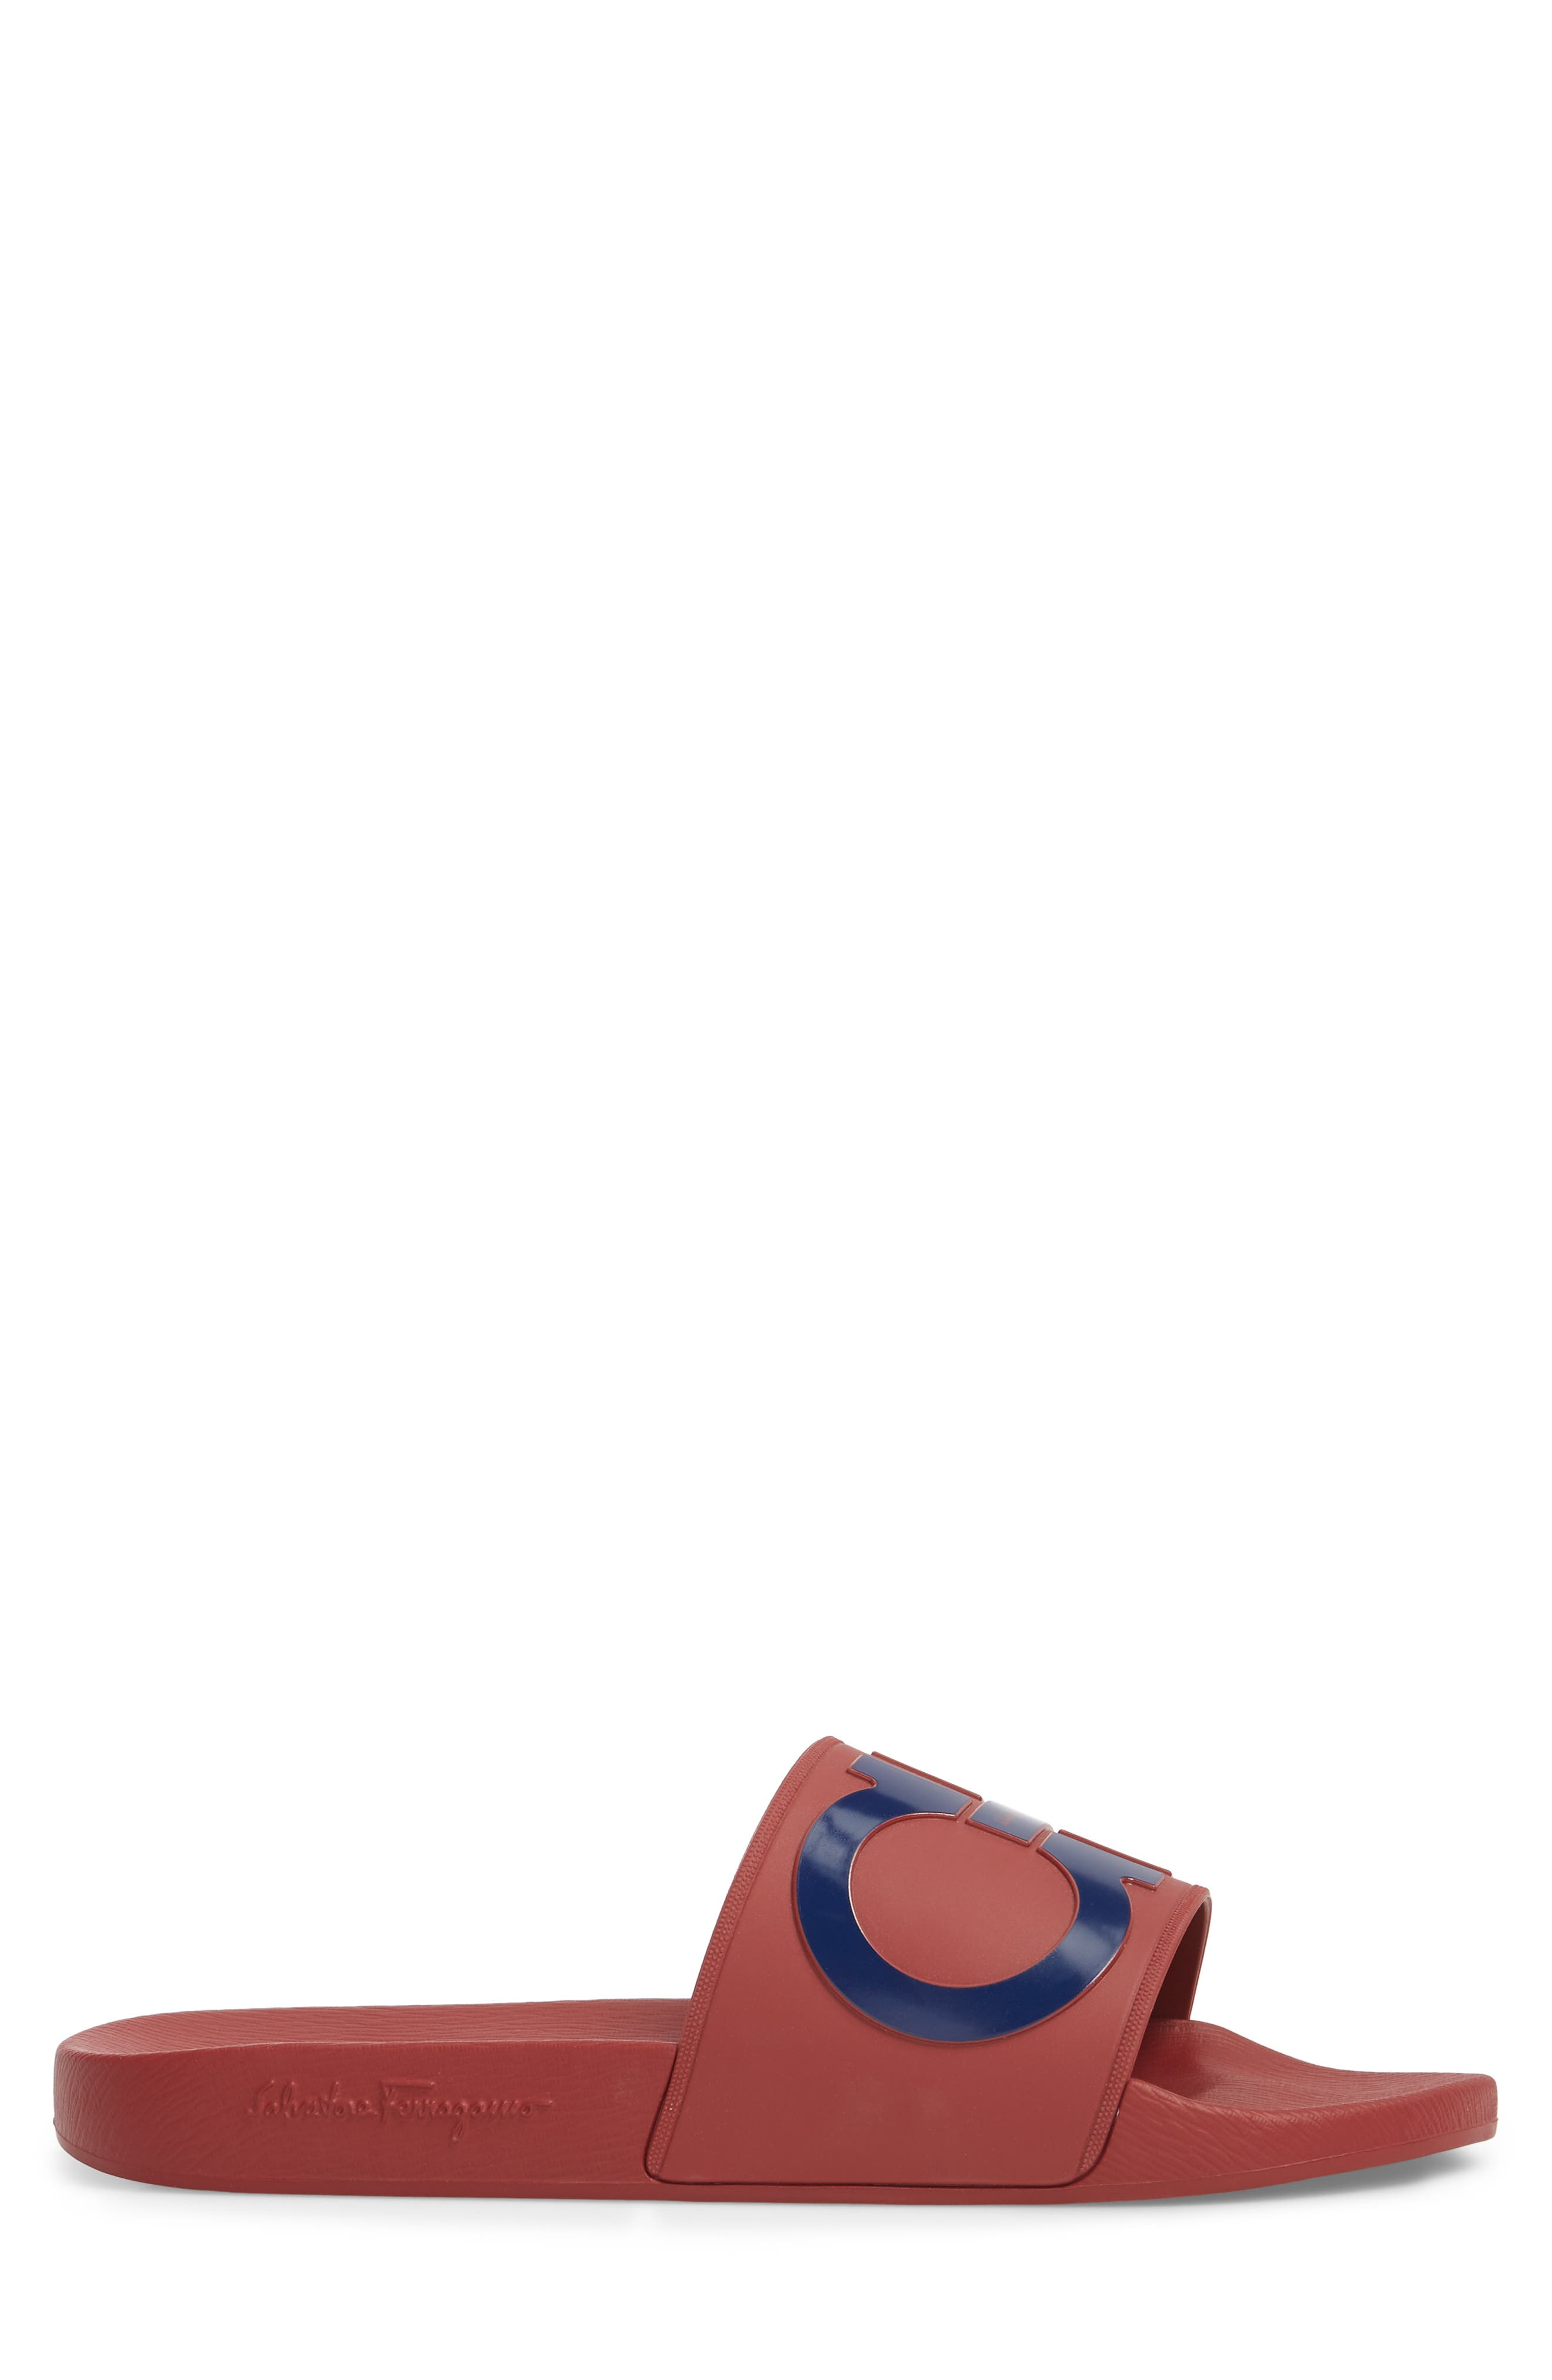 Groove Slide Sandal,                             Alternate thumbnail 3, color,                             Rouge